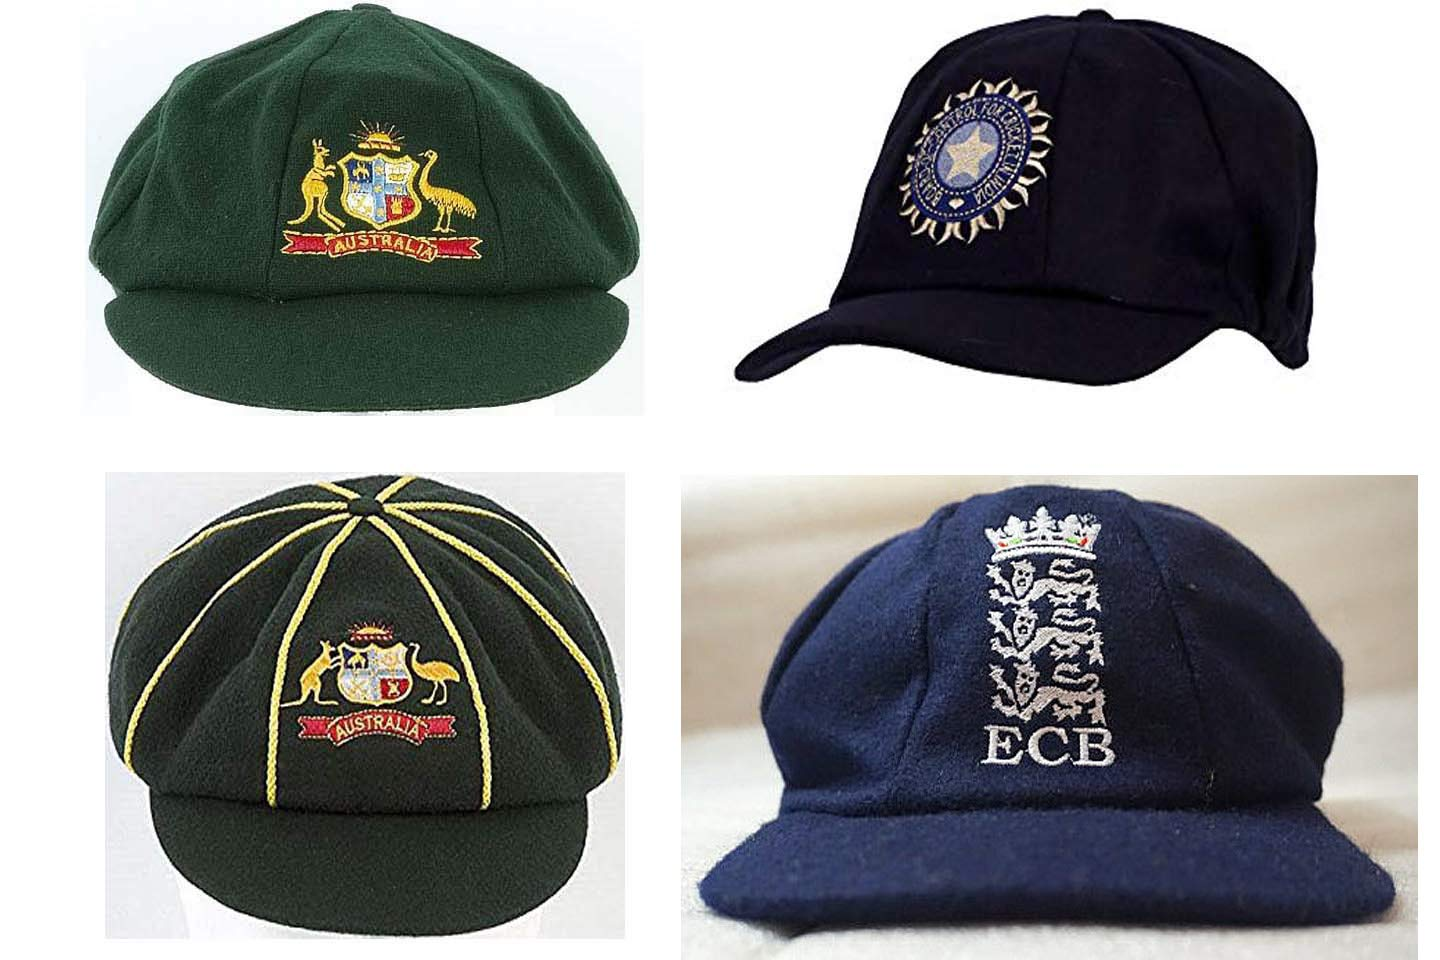 AG Mart Team India Cricket Baggy Cap 100% Woollen Australia England Cricket Test Cap (B0819P3LSG) Amazon Price History, Amazon Price Tracker